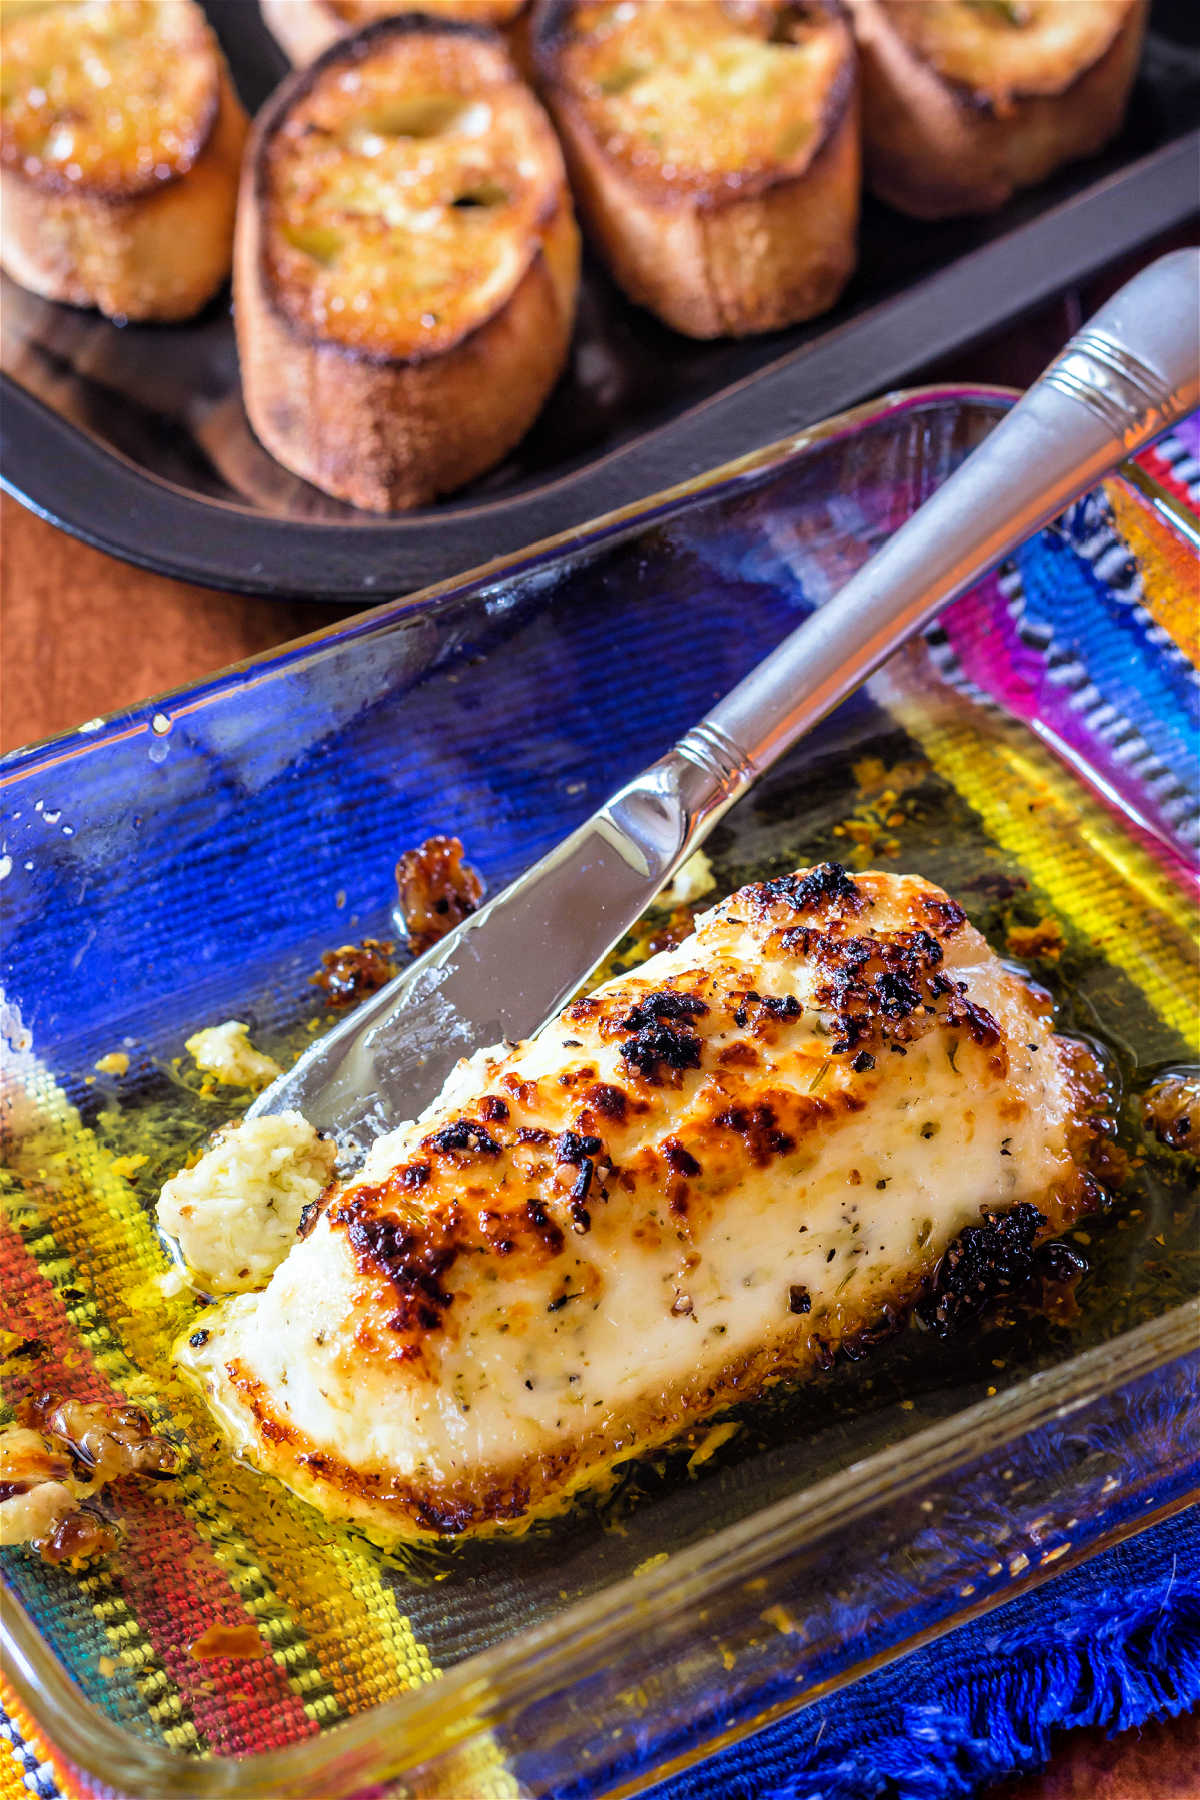 A glass baking dish containing a log of broiled goat cheese swimming in olive oil. In the background is a tray of toasted crostini.